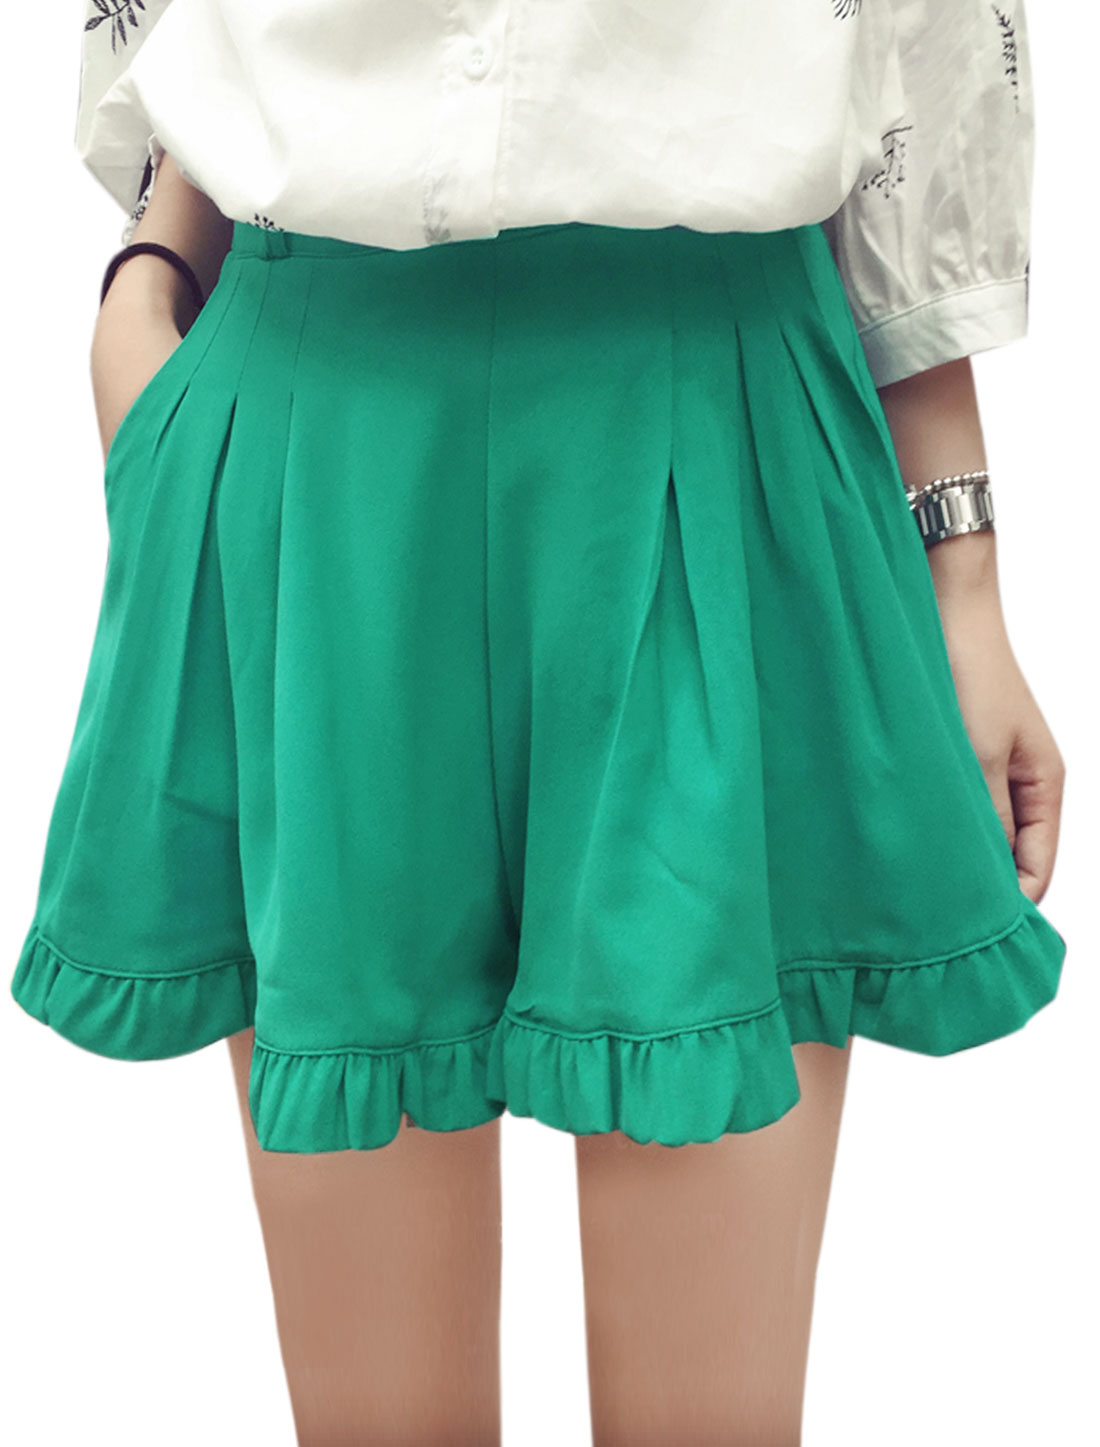 Women Mid Rise Belt Loop Front Pockets Leisure Short Shorts Turquoise S